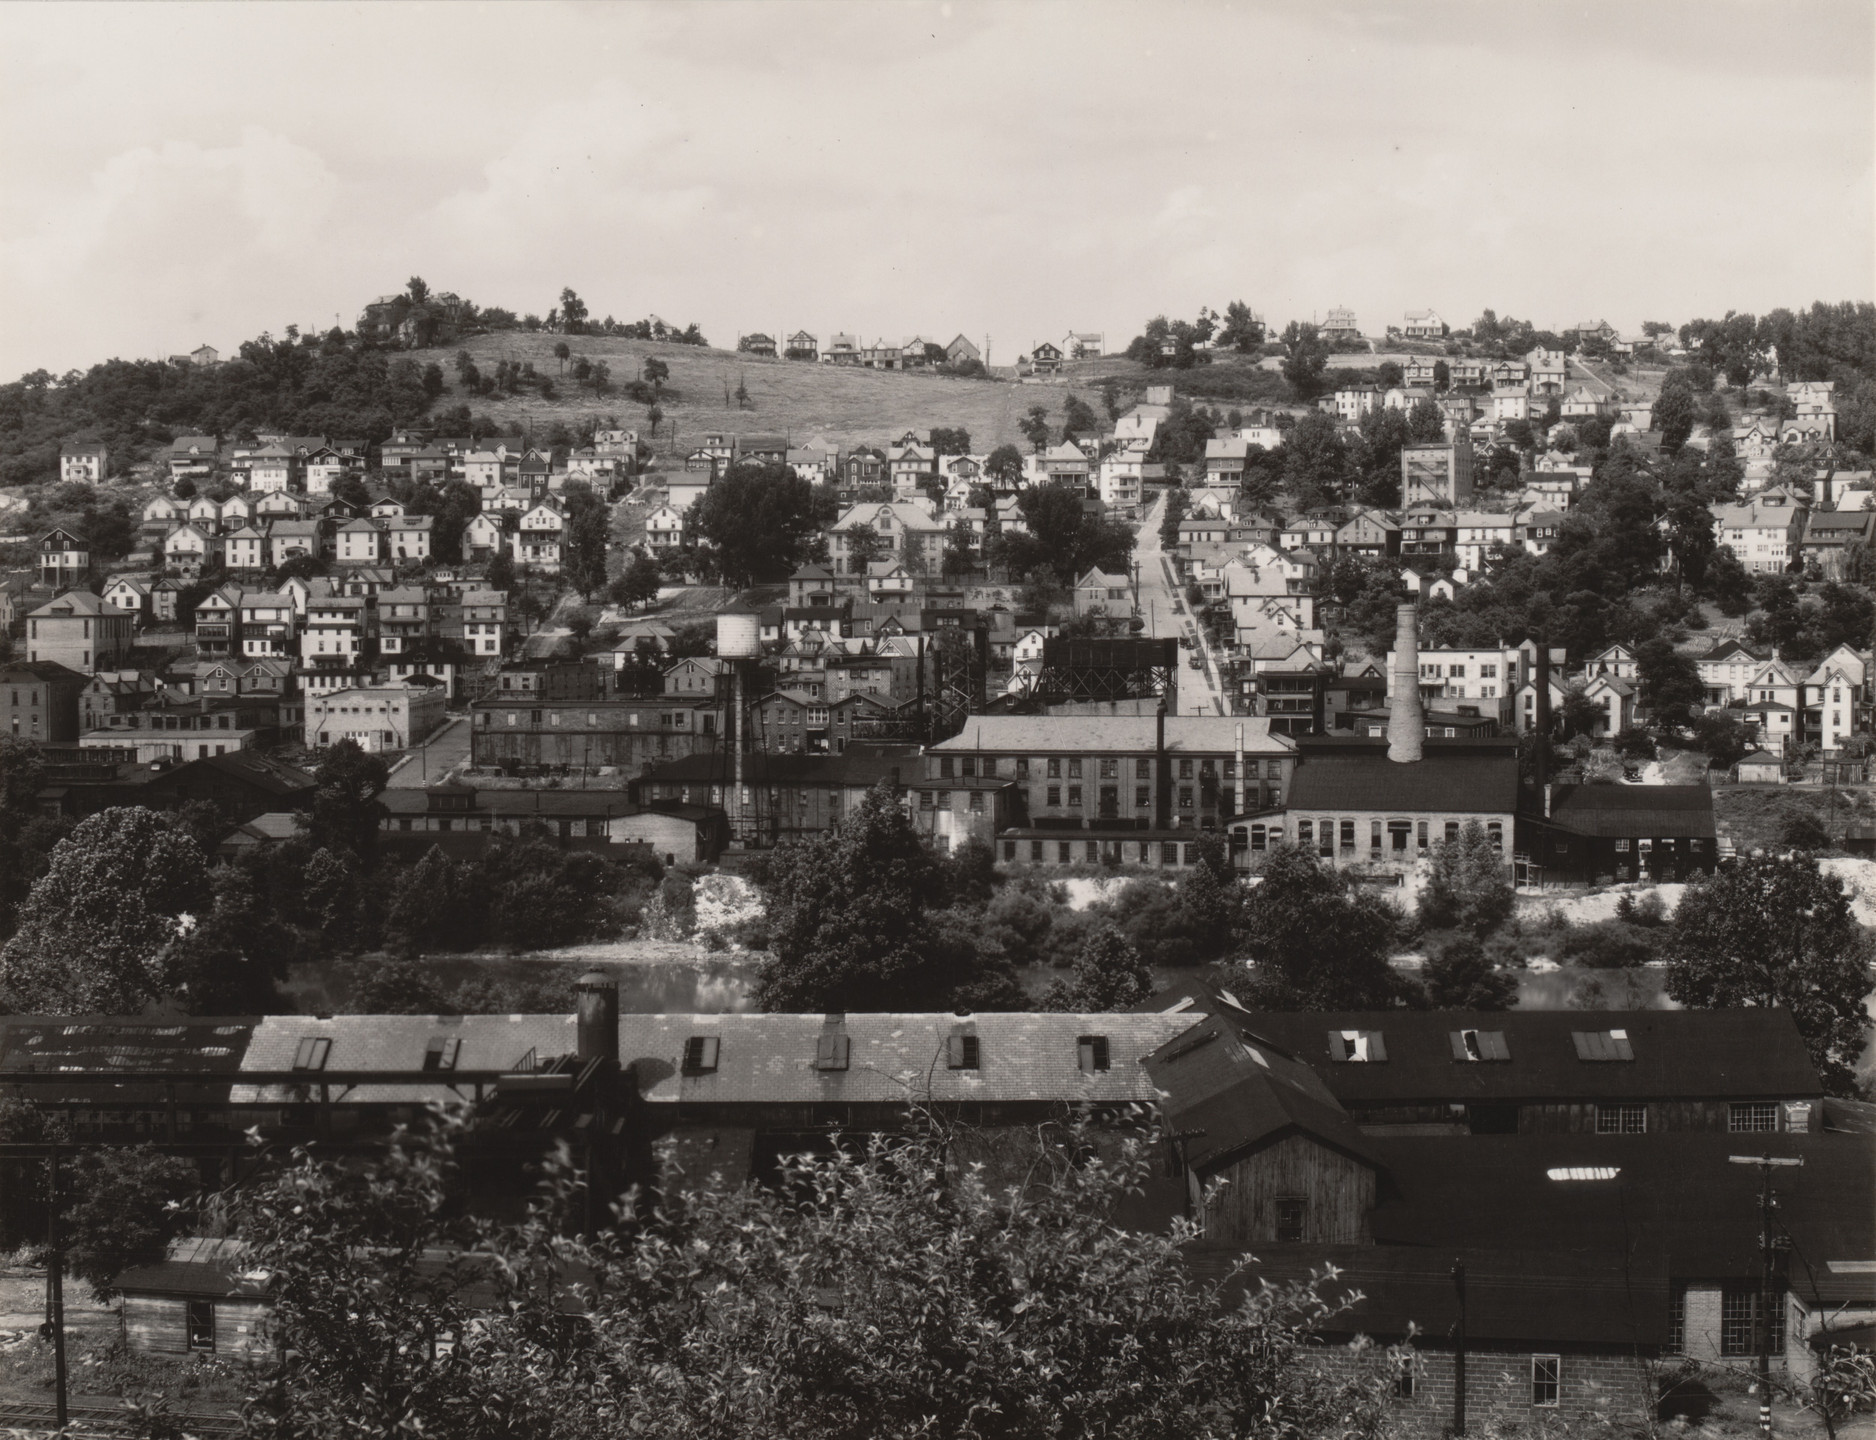 Walker Evans. View of Morgantown, West Virginia. June, 1935